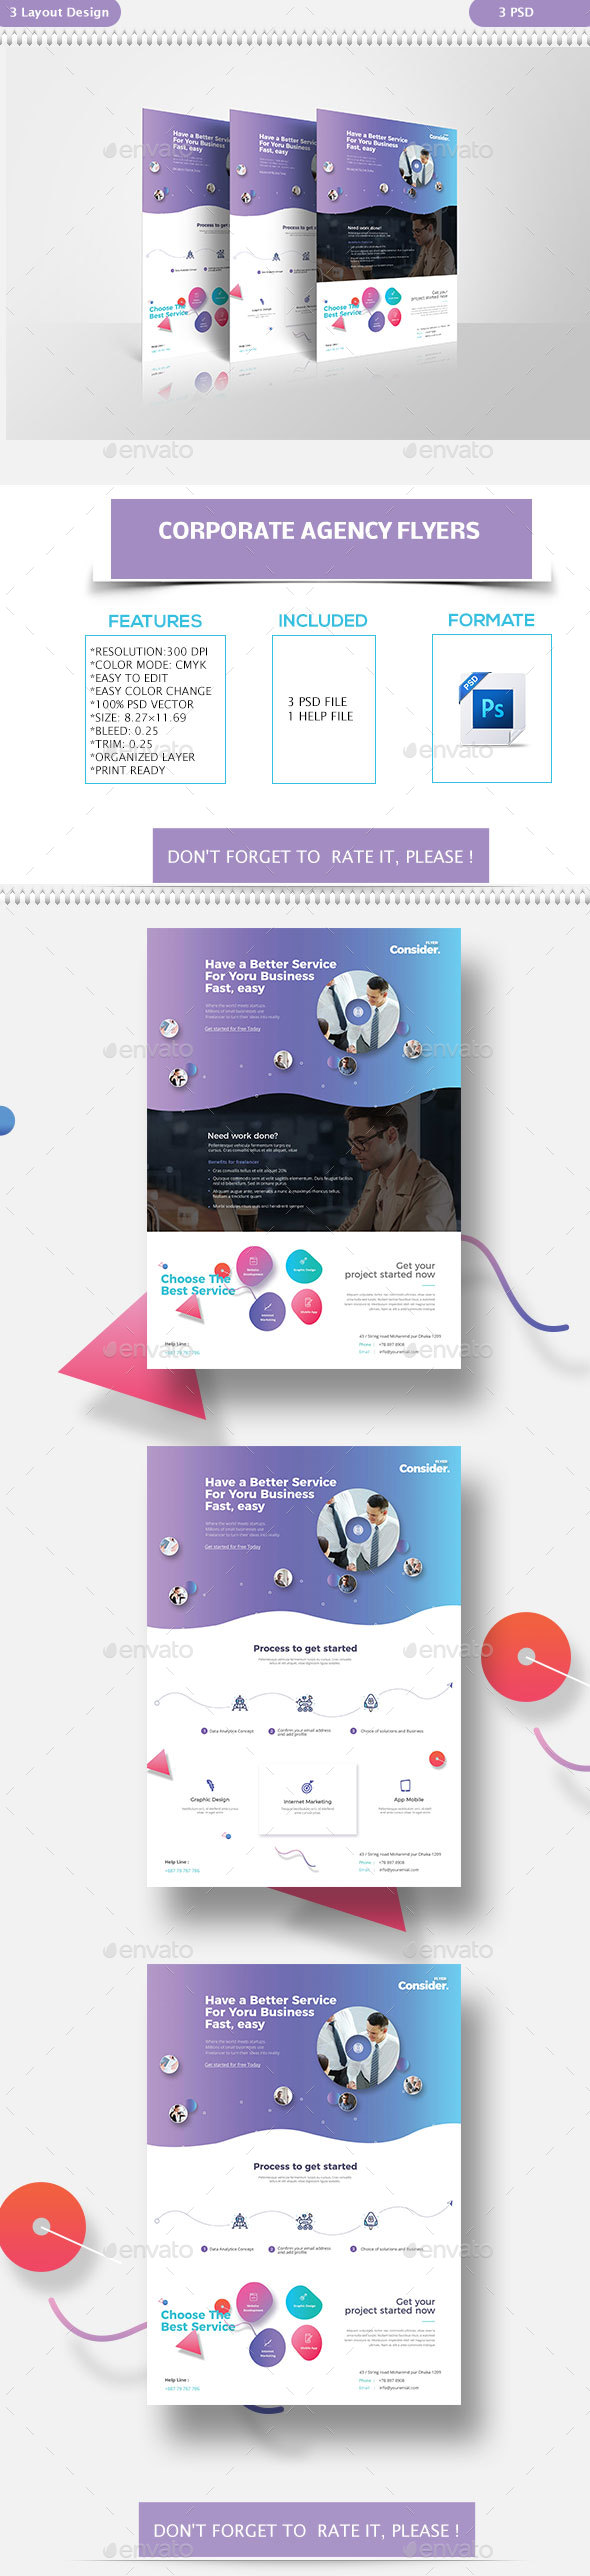 GraphicRiver Corporate Agency Flyers 21188168